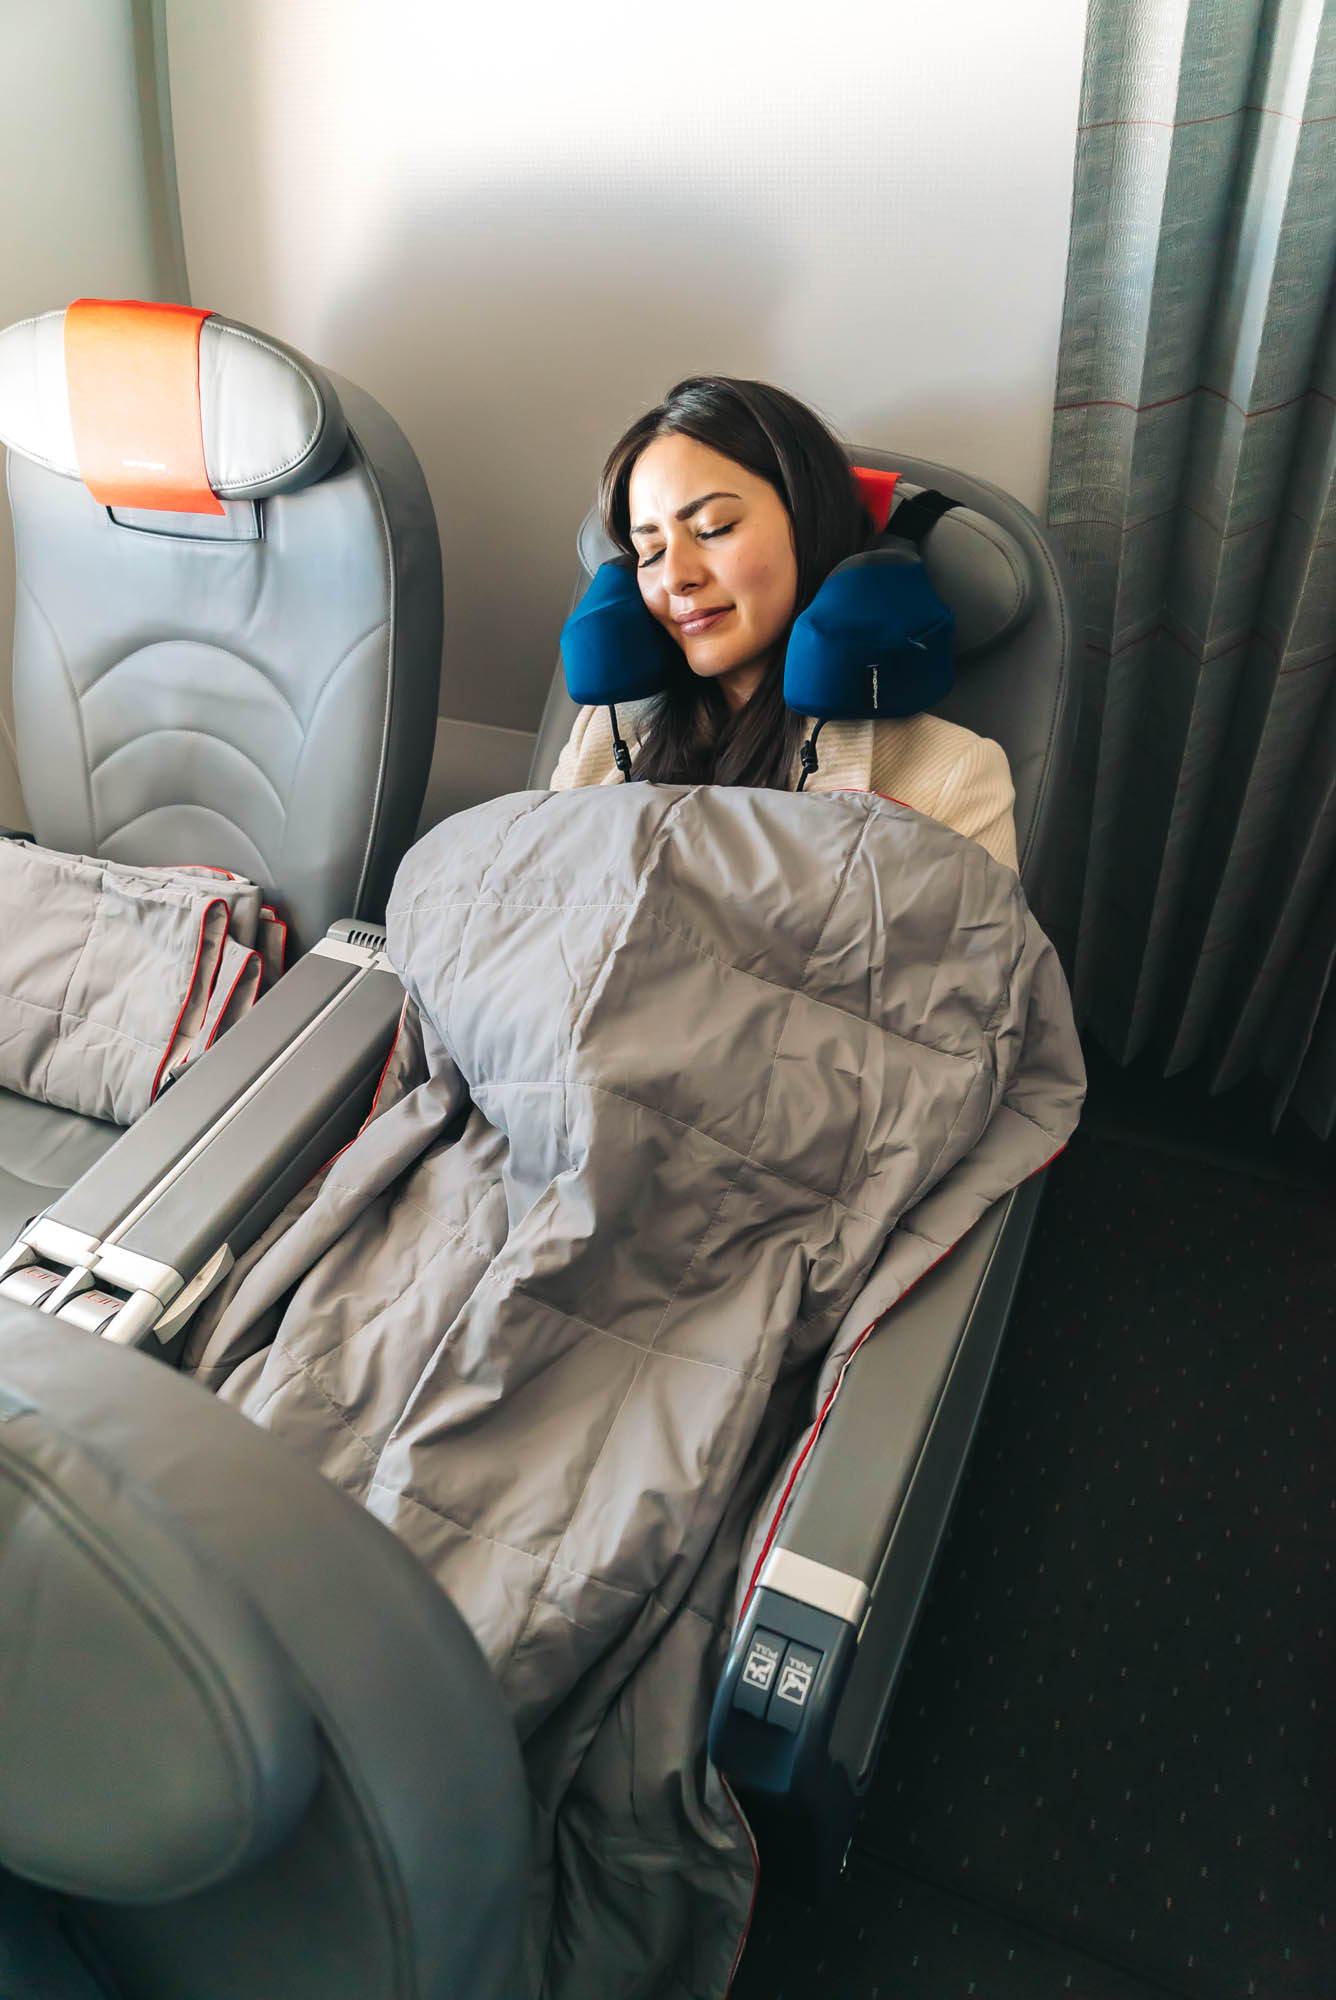 You will sleep comfortably with the Cabeau Travel Pillow